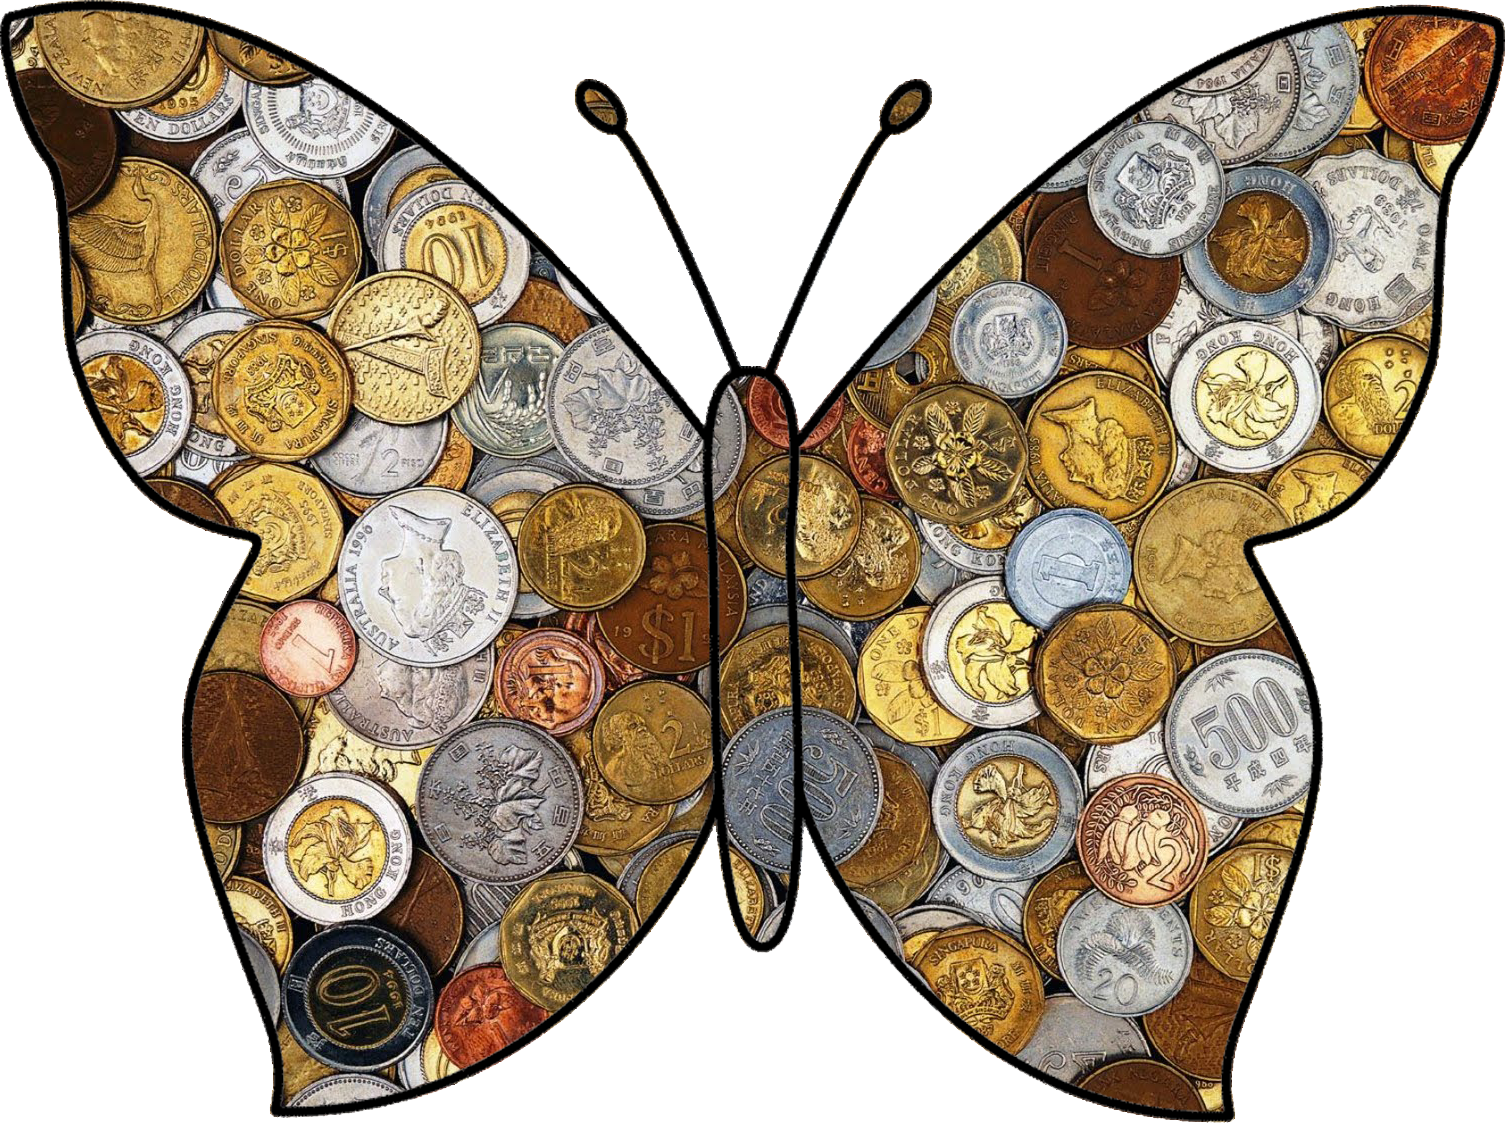 butterfly made of change